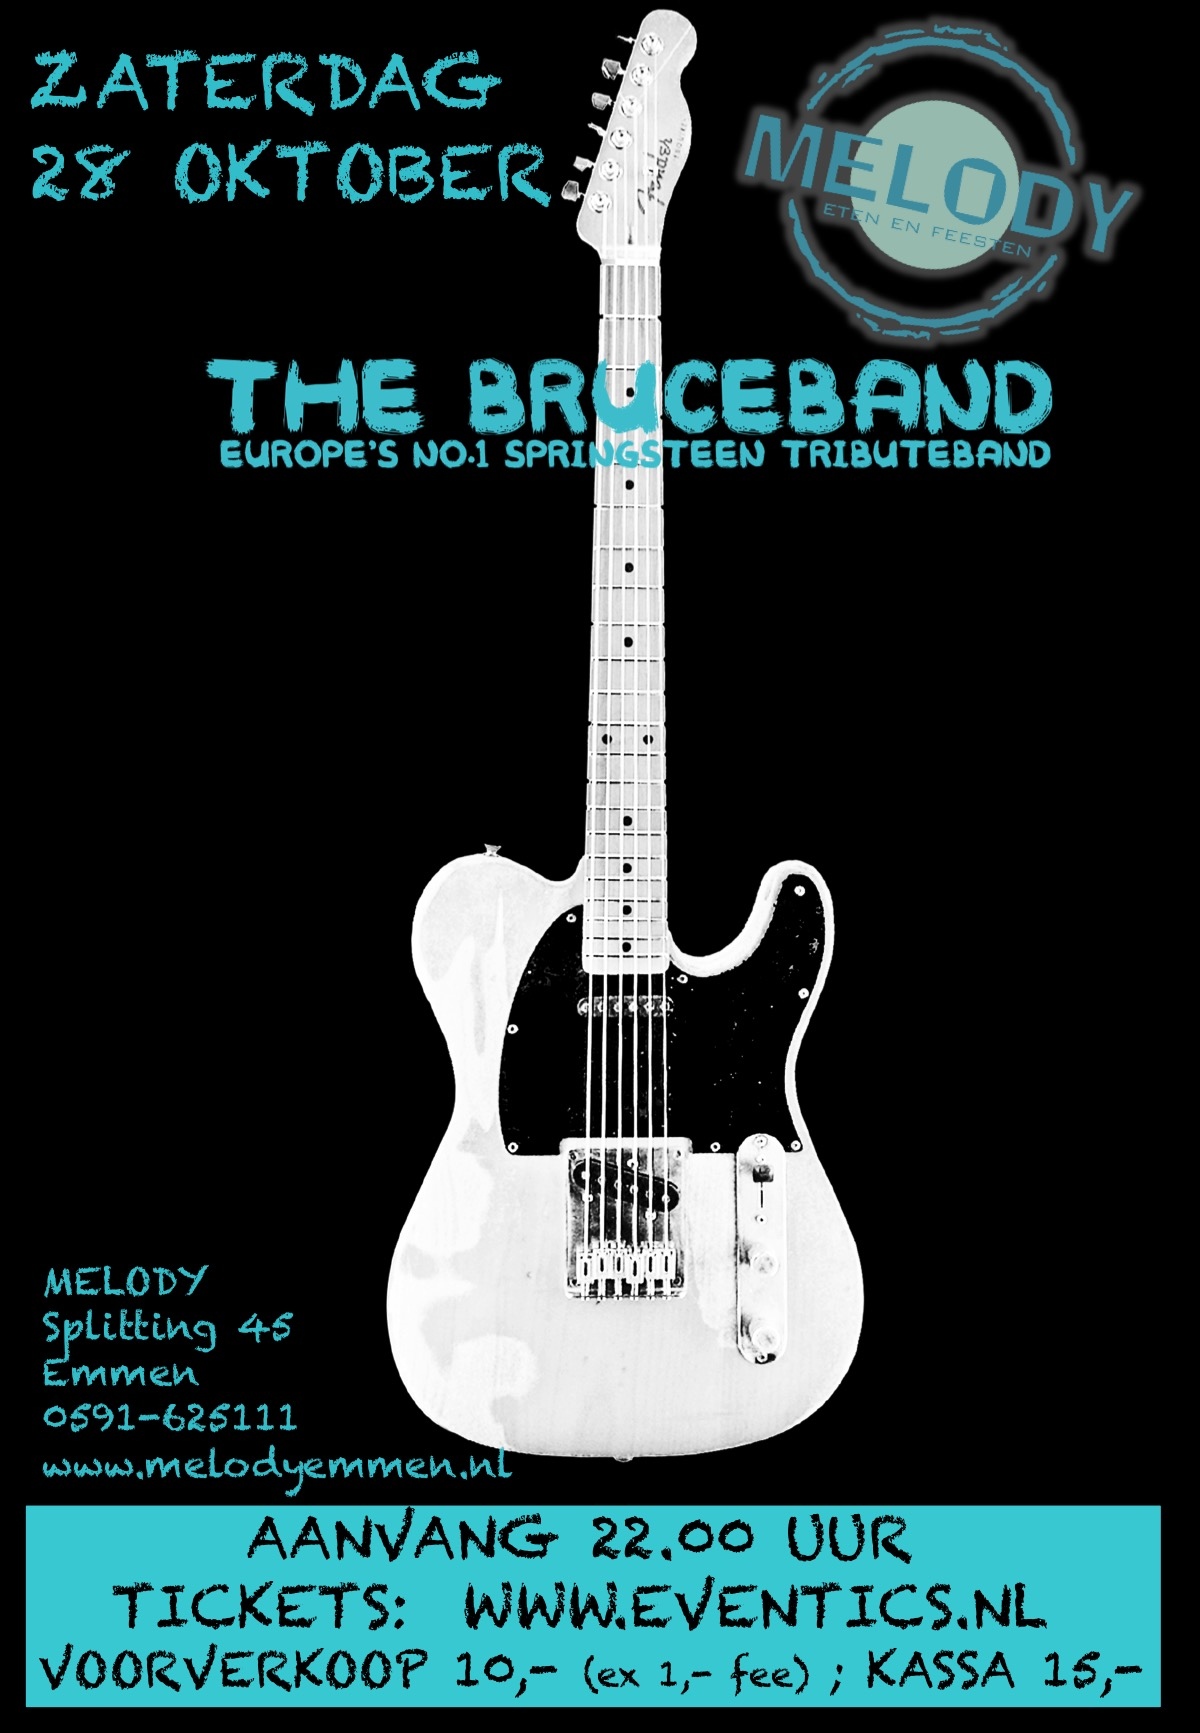 Bruceband - Europe's nr. 1 Springsteen Tribute